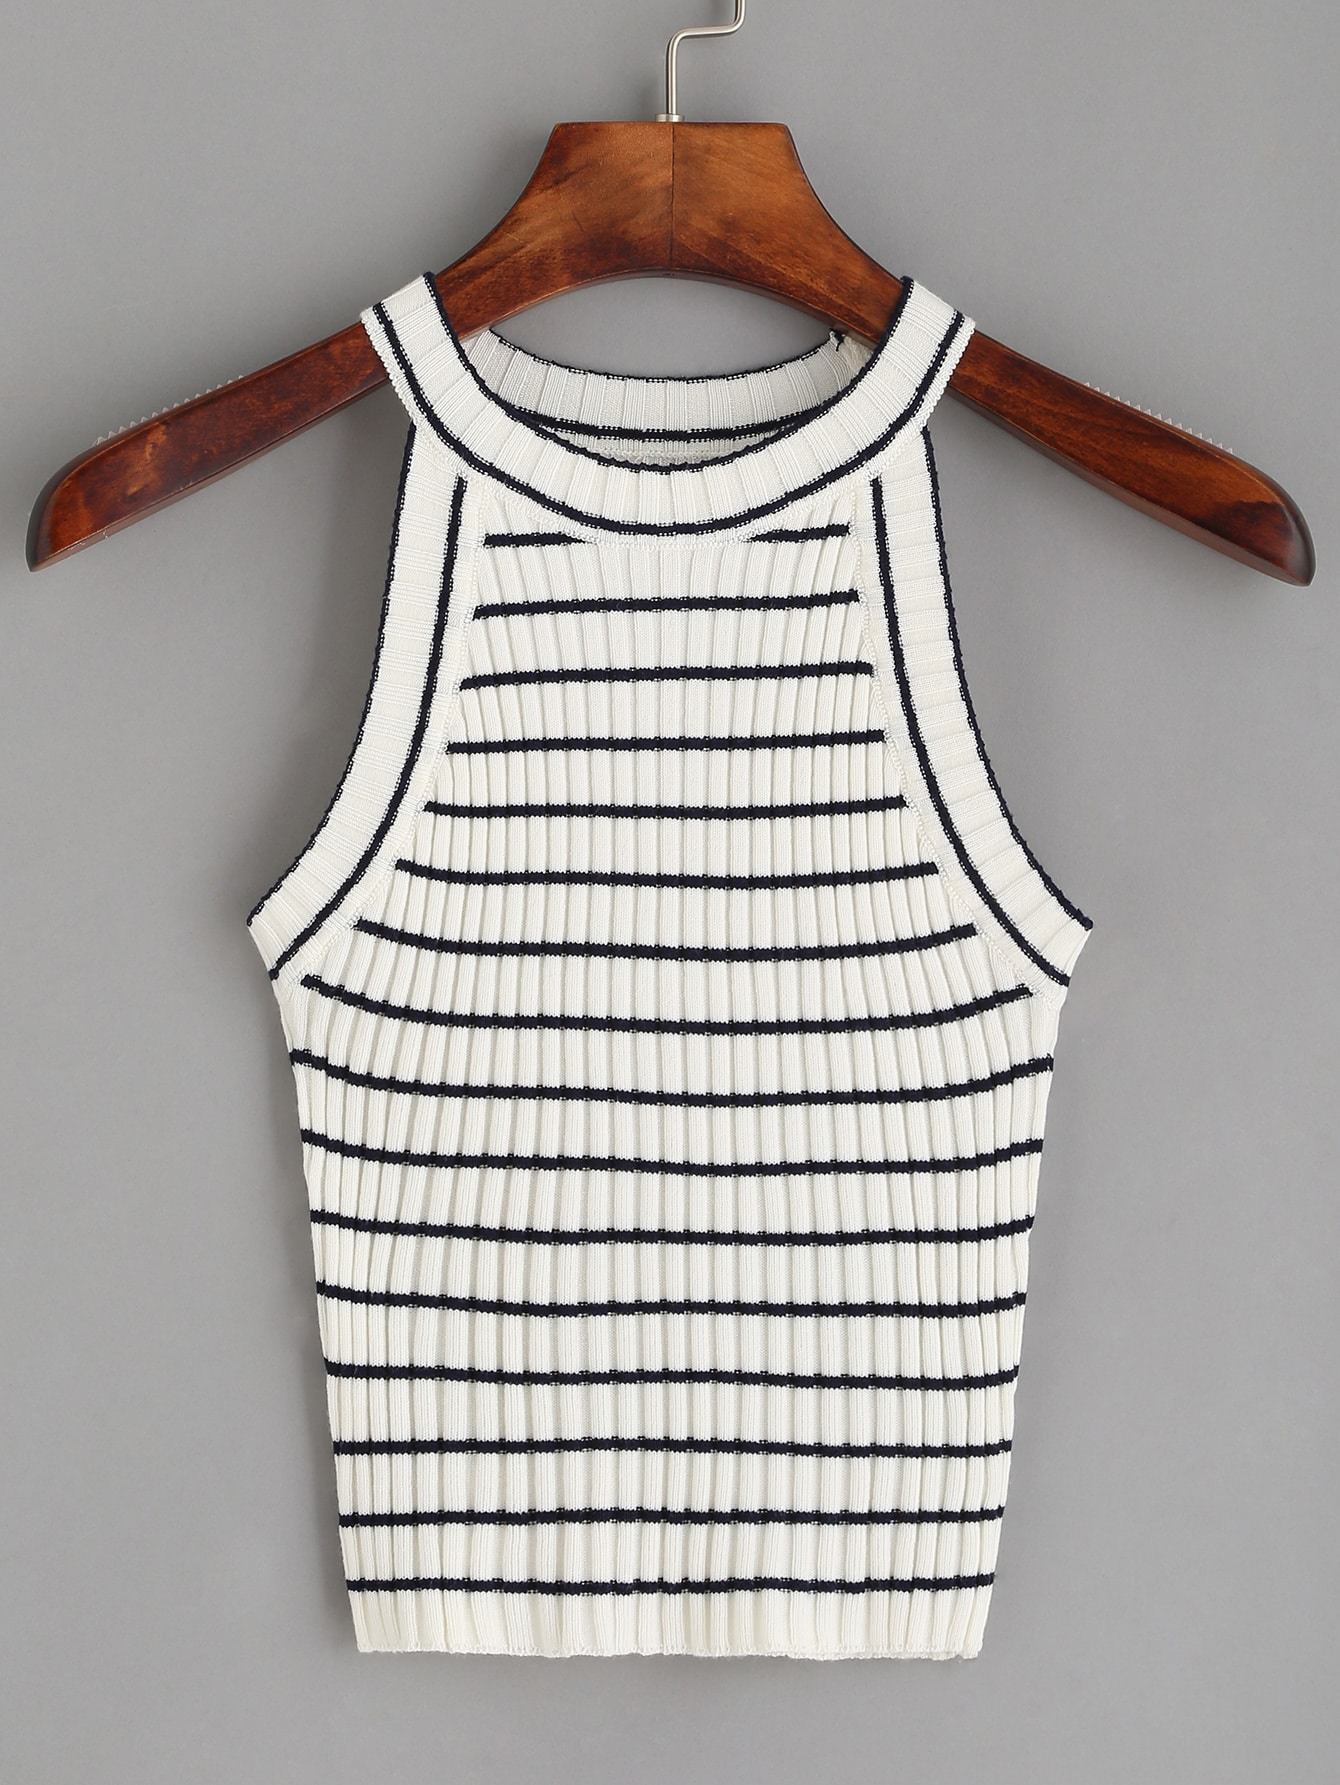 White Striped Ribbed Knit Top vest160630001